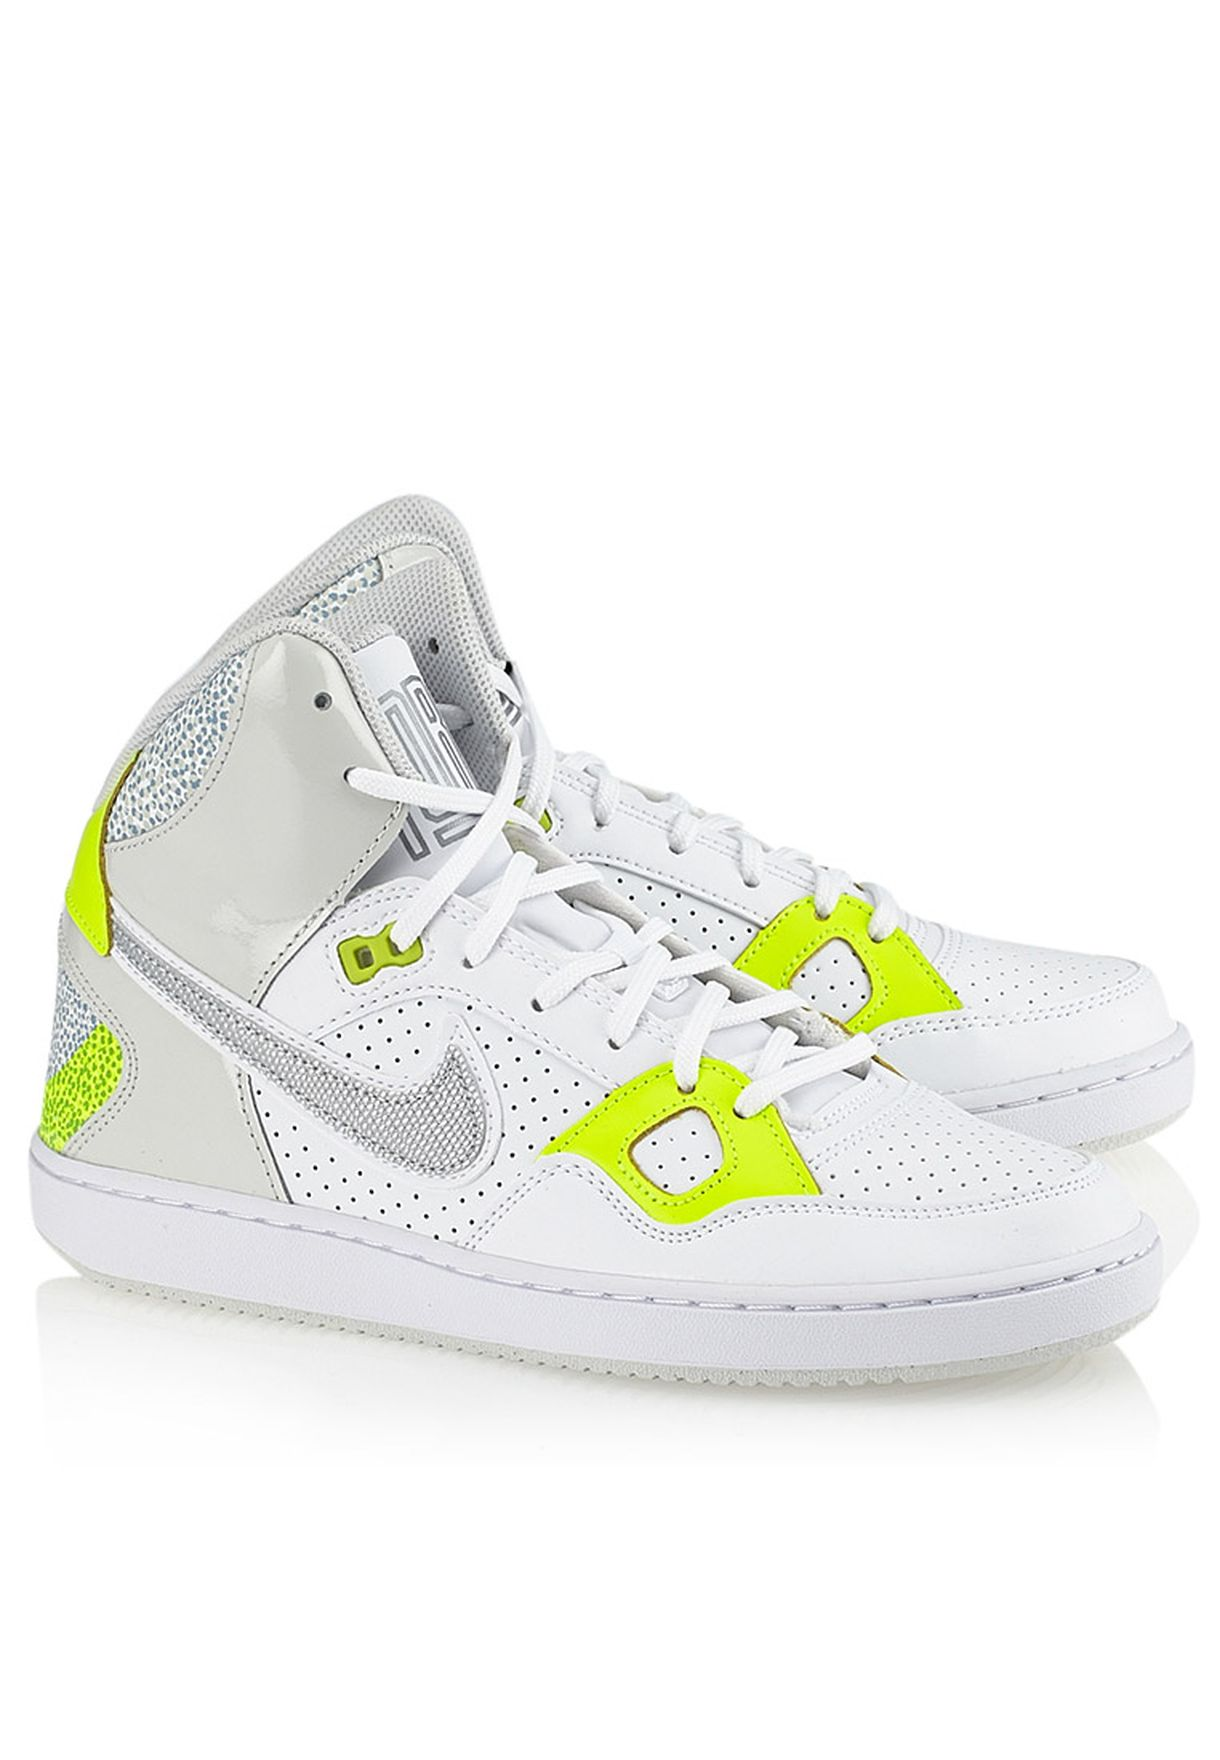 c3abdd080bd0 Shop Nike white Son of Force Mids 616303-103 for Women in Saudi ...